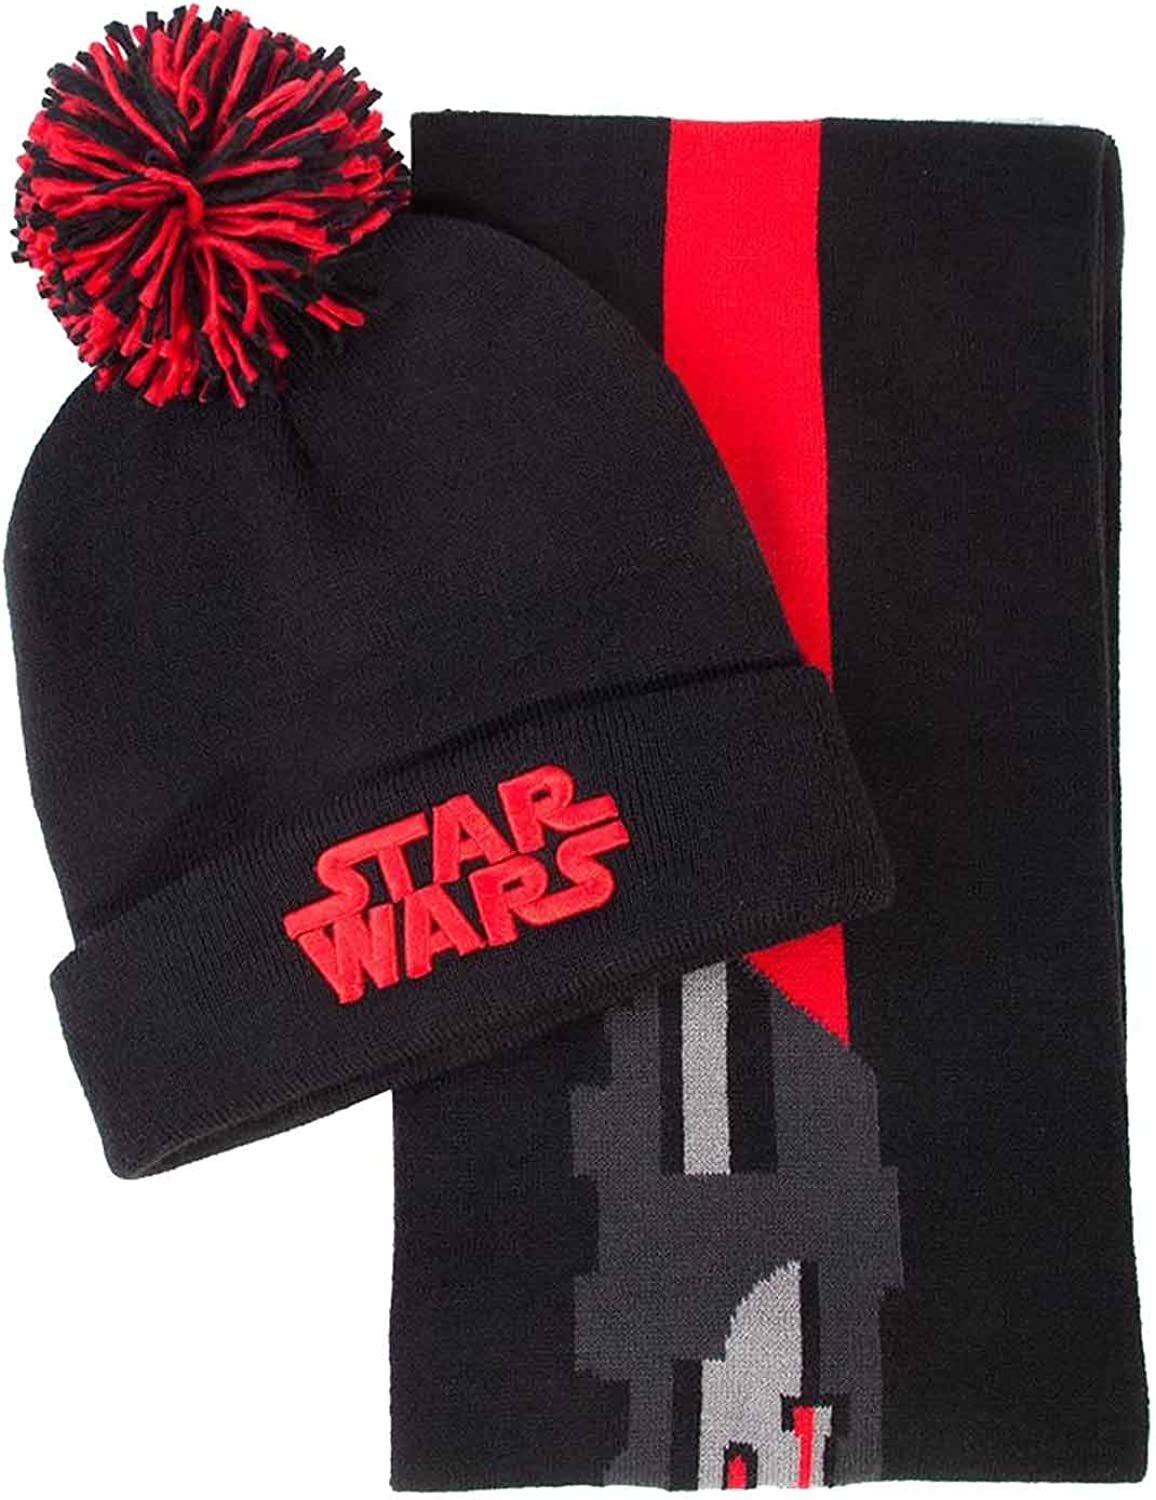 STAR WARS Beanie Scarf Gift Set Purchase Light Sabre Vader Popularity Official Darth